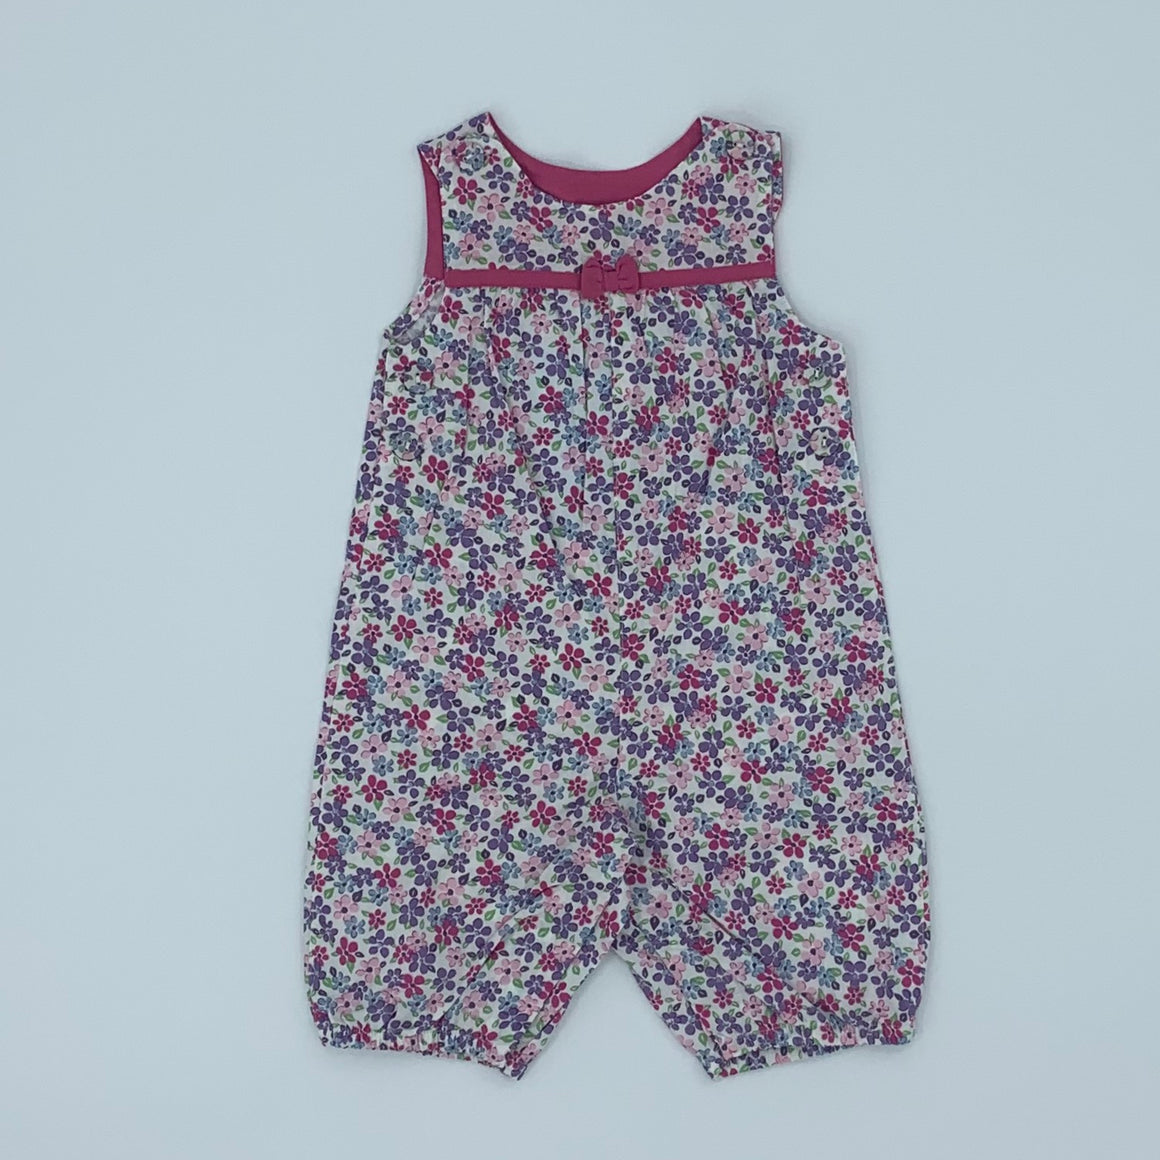 New Jojo Maman Bebe flower romper dungarees size 6-12 months